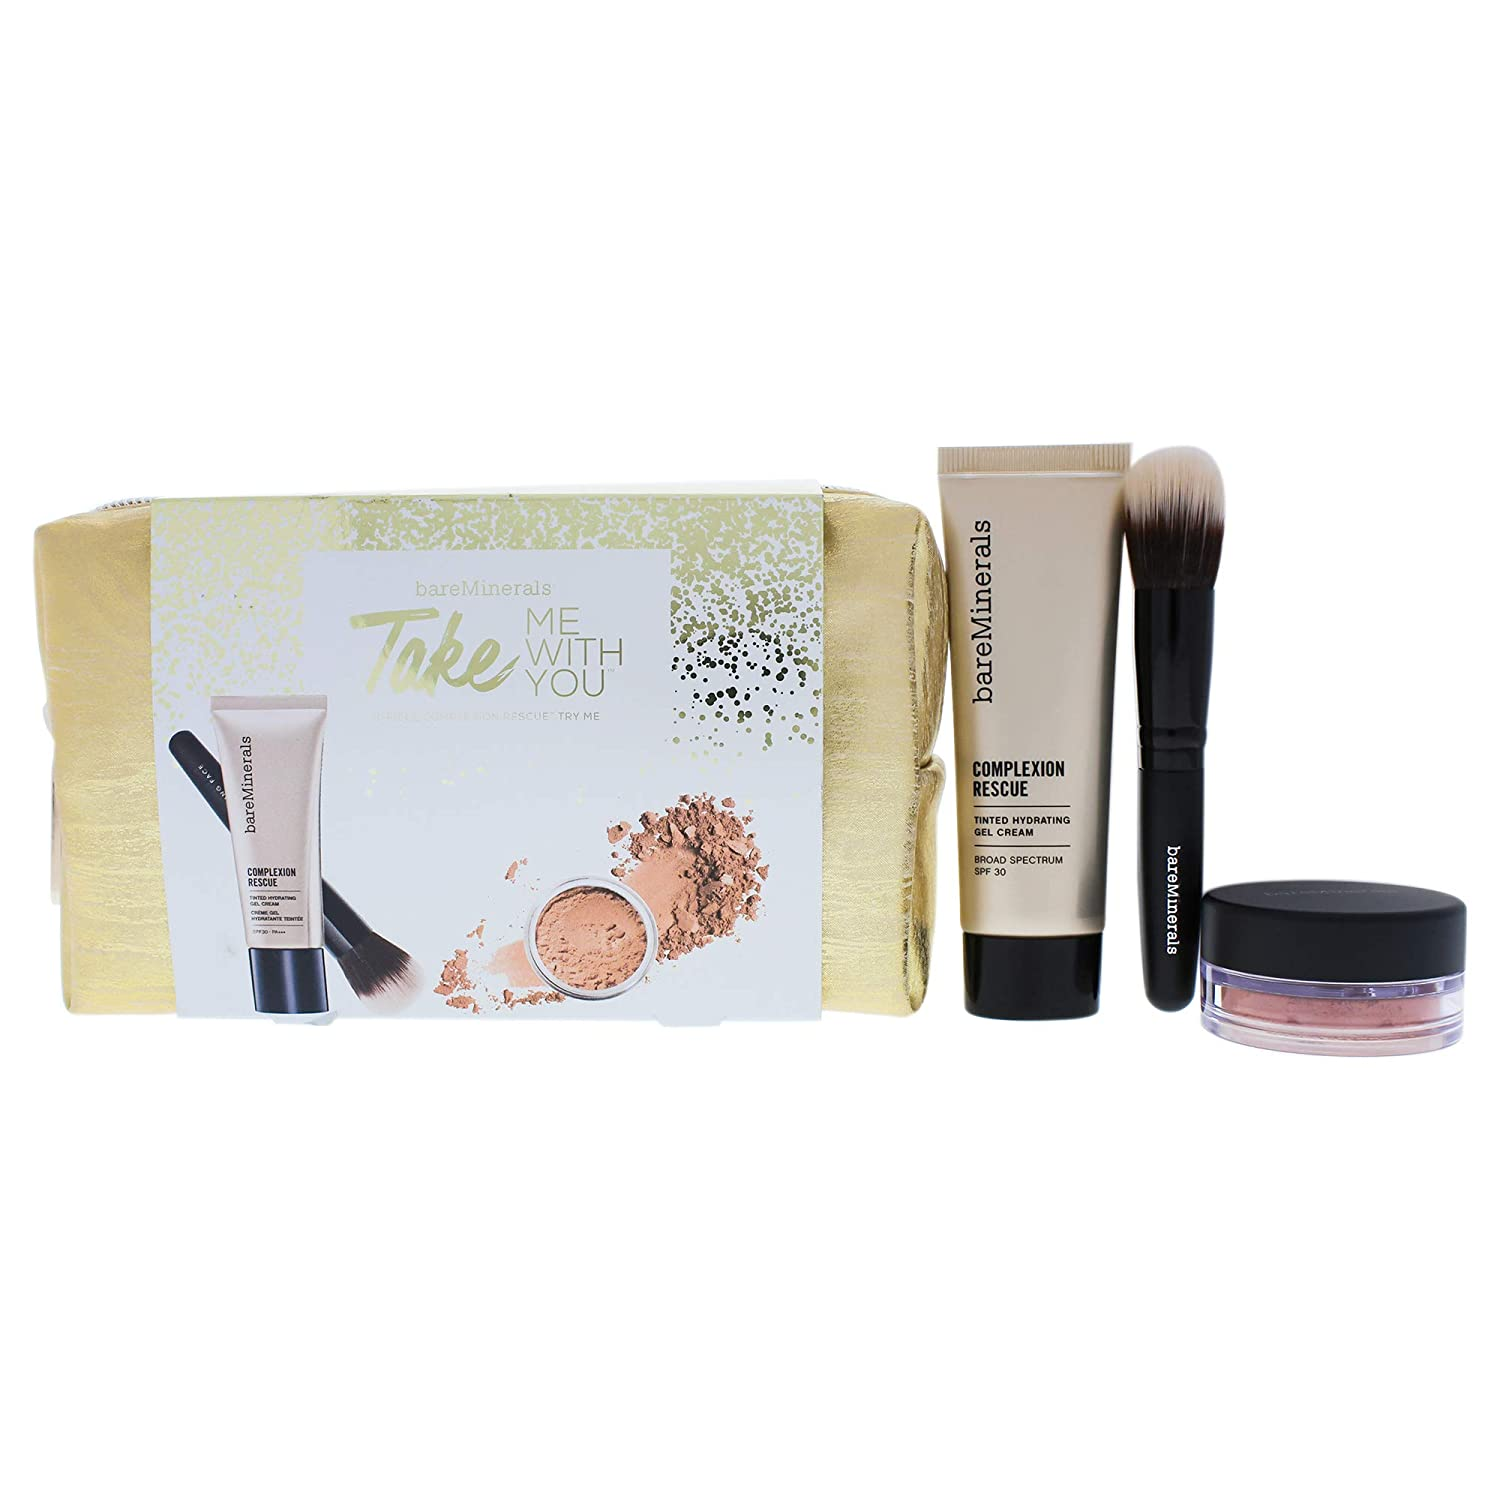 ベアミネラル Take Me With You Complexion Rescue Try Me Set - # 05 Natural 3pcs+1bag並行輸入品 B0764S8VK1